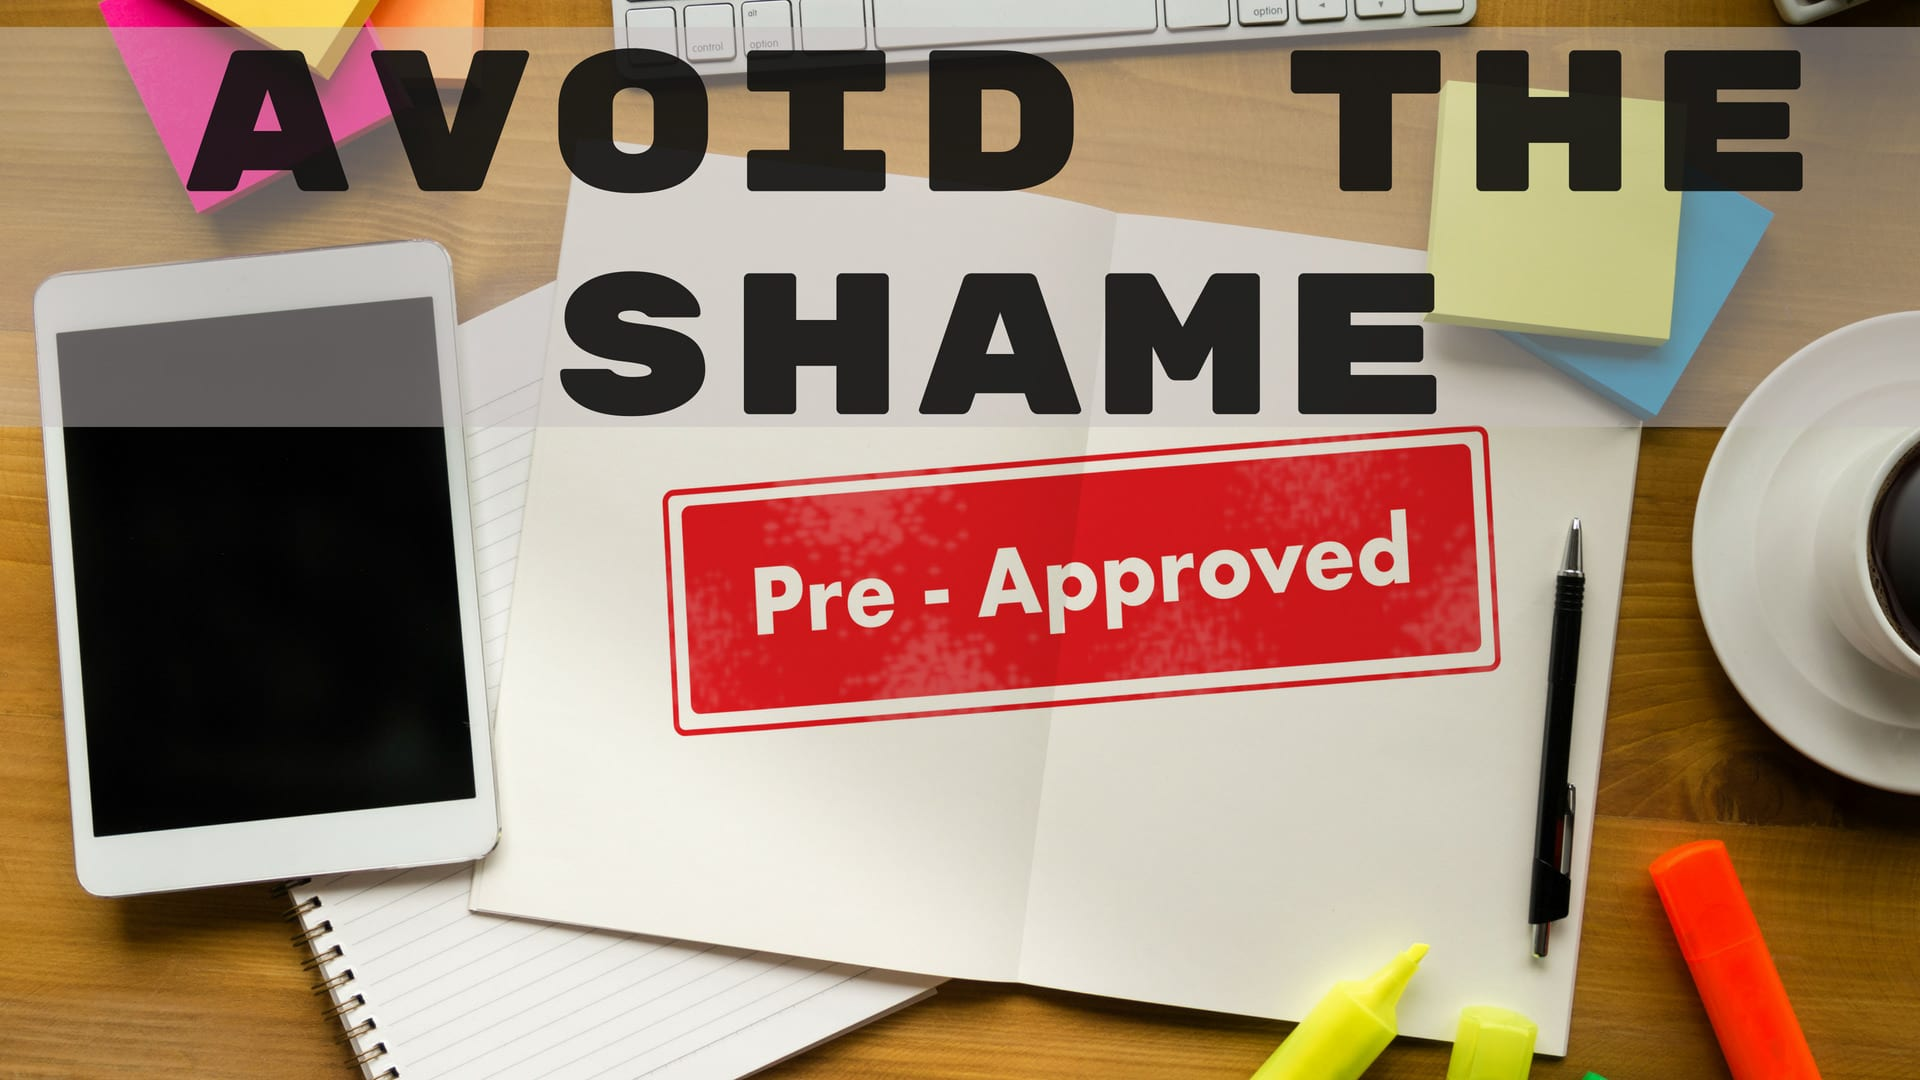 Avoid preapproval shaming